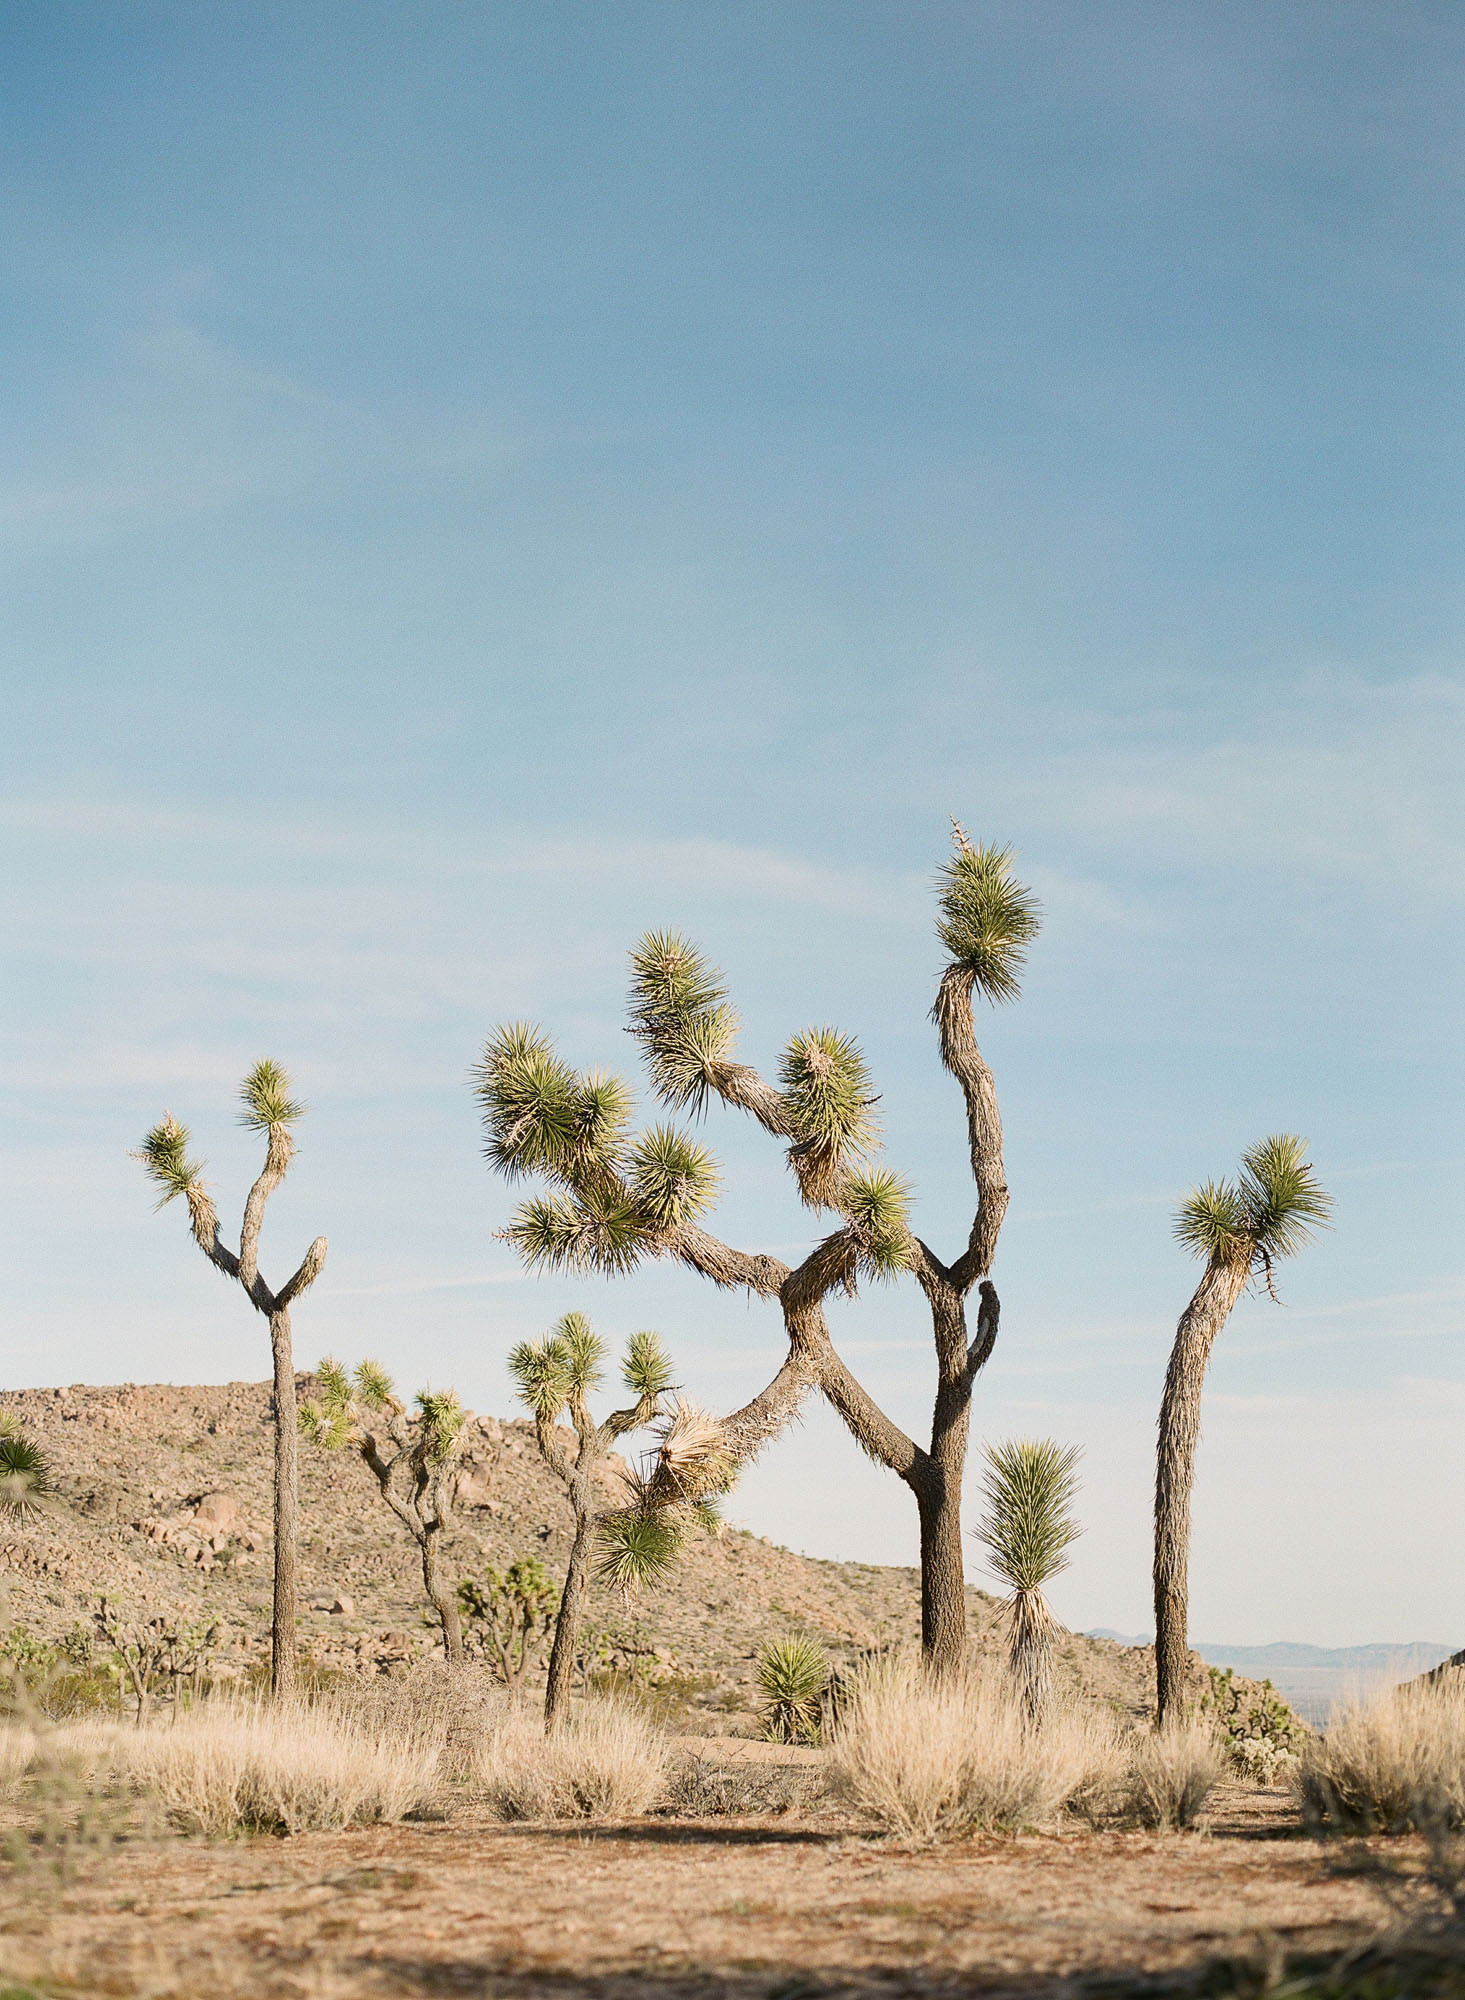 joshua-tree-palm-springs-california-film-photography-travel-photographer-003